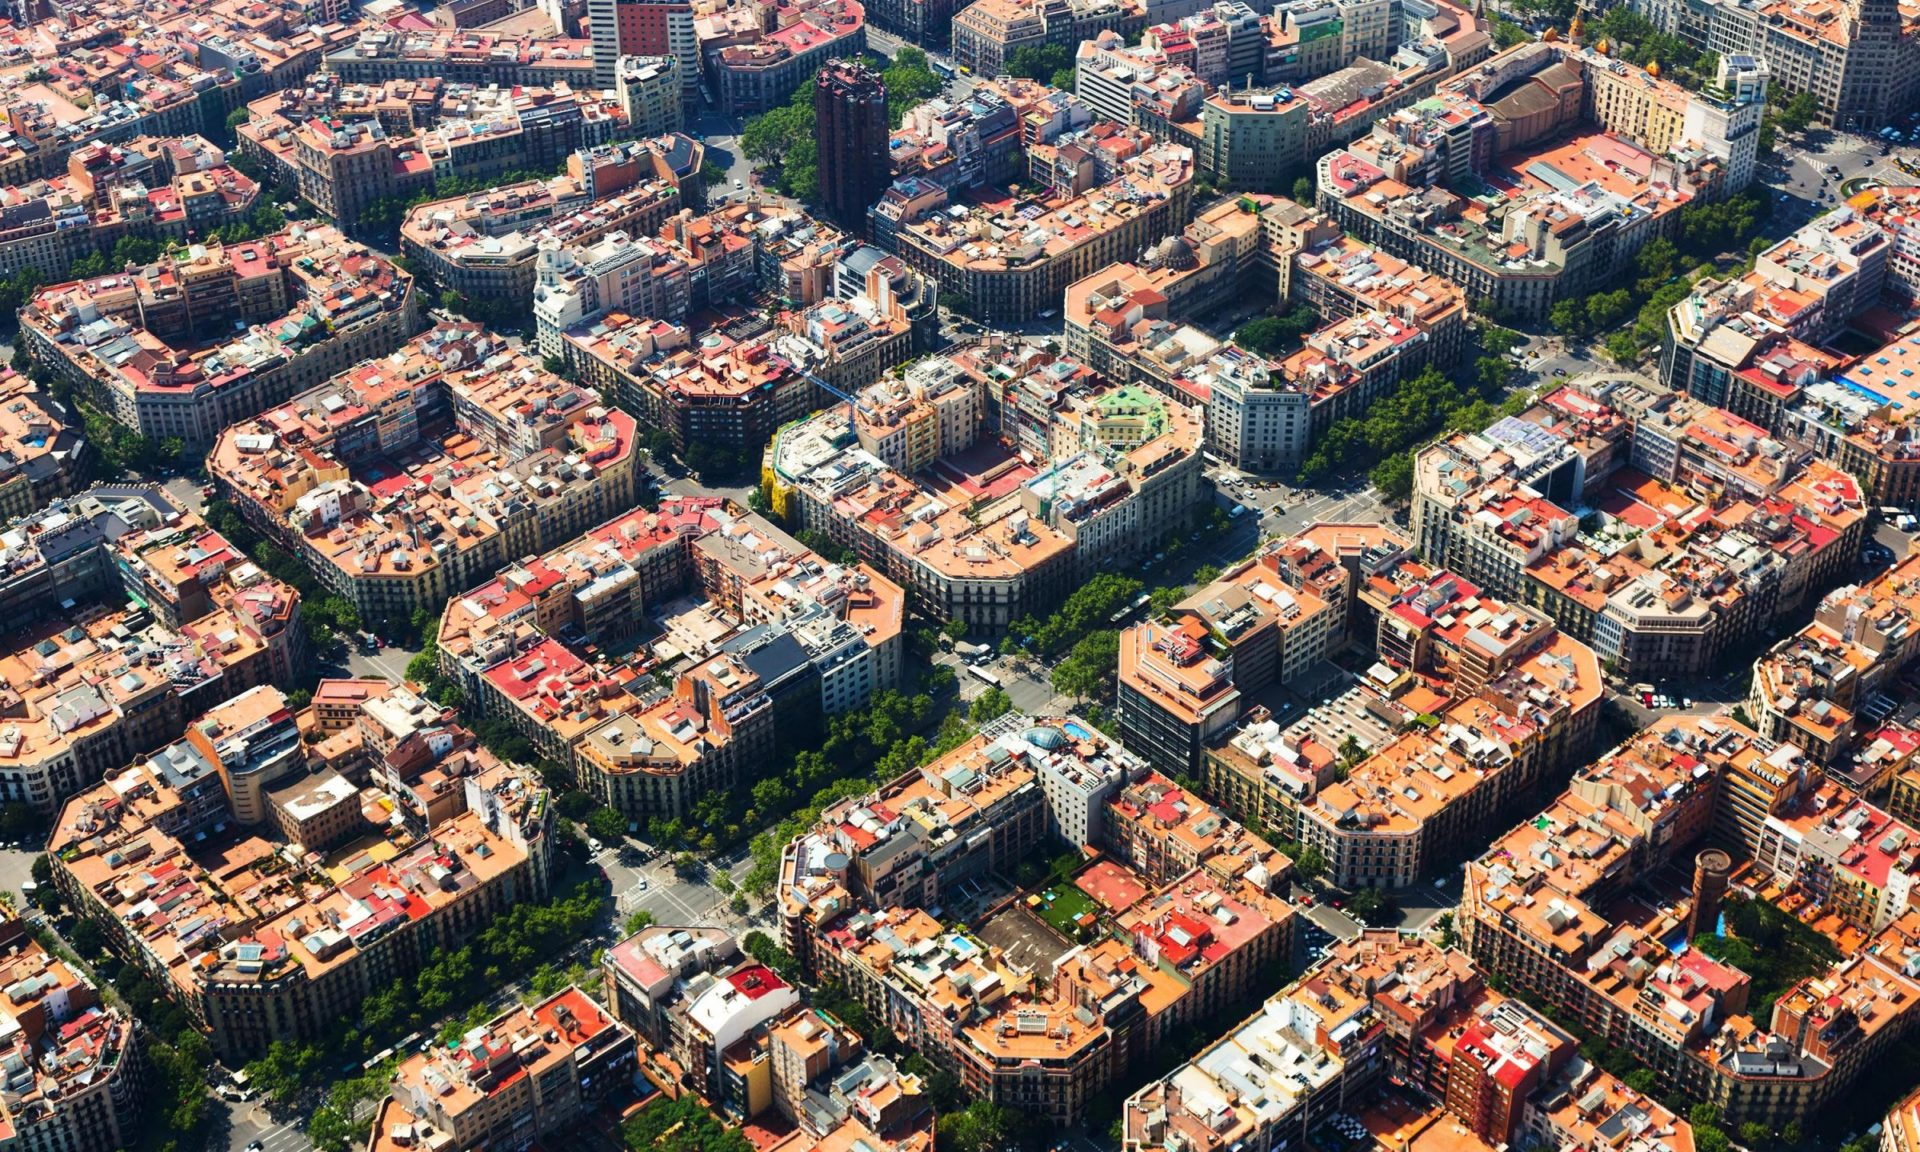 An image of Barcelona's superblocks